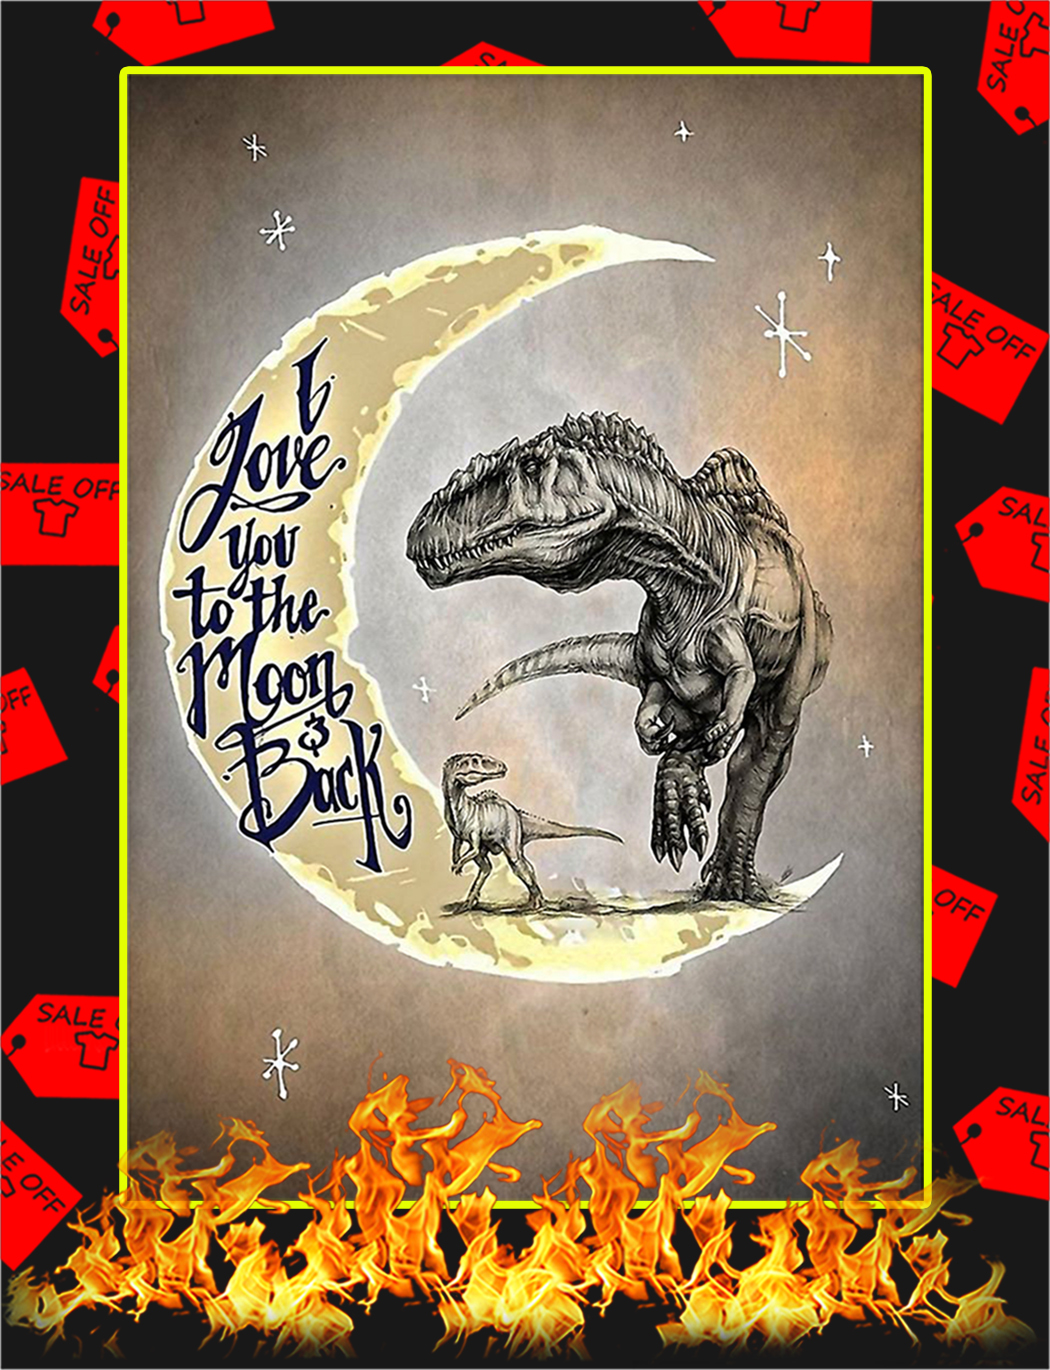 Dinosaurs I Love You To The Moon And Back Poster - A1